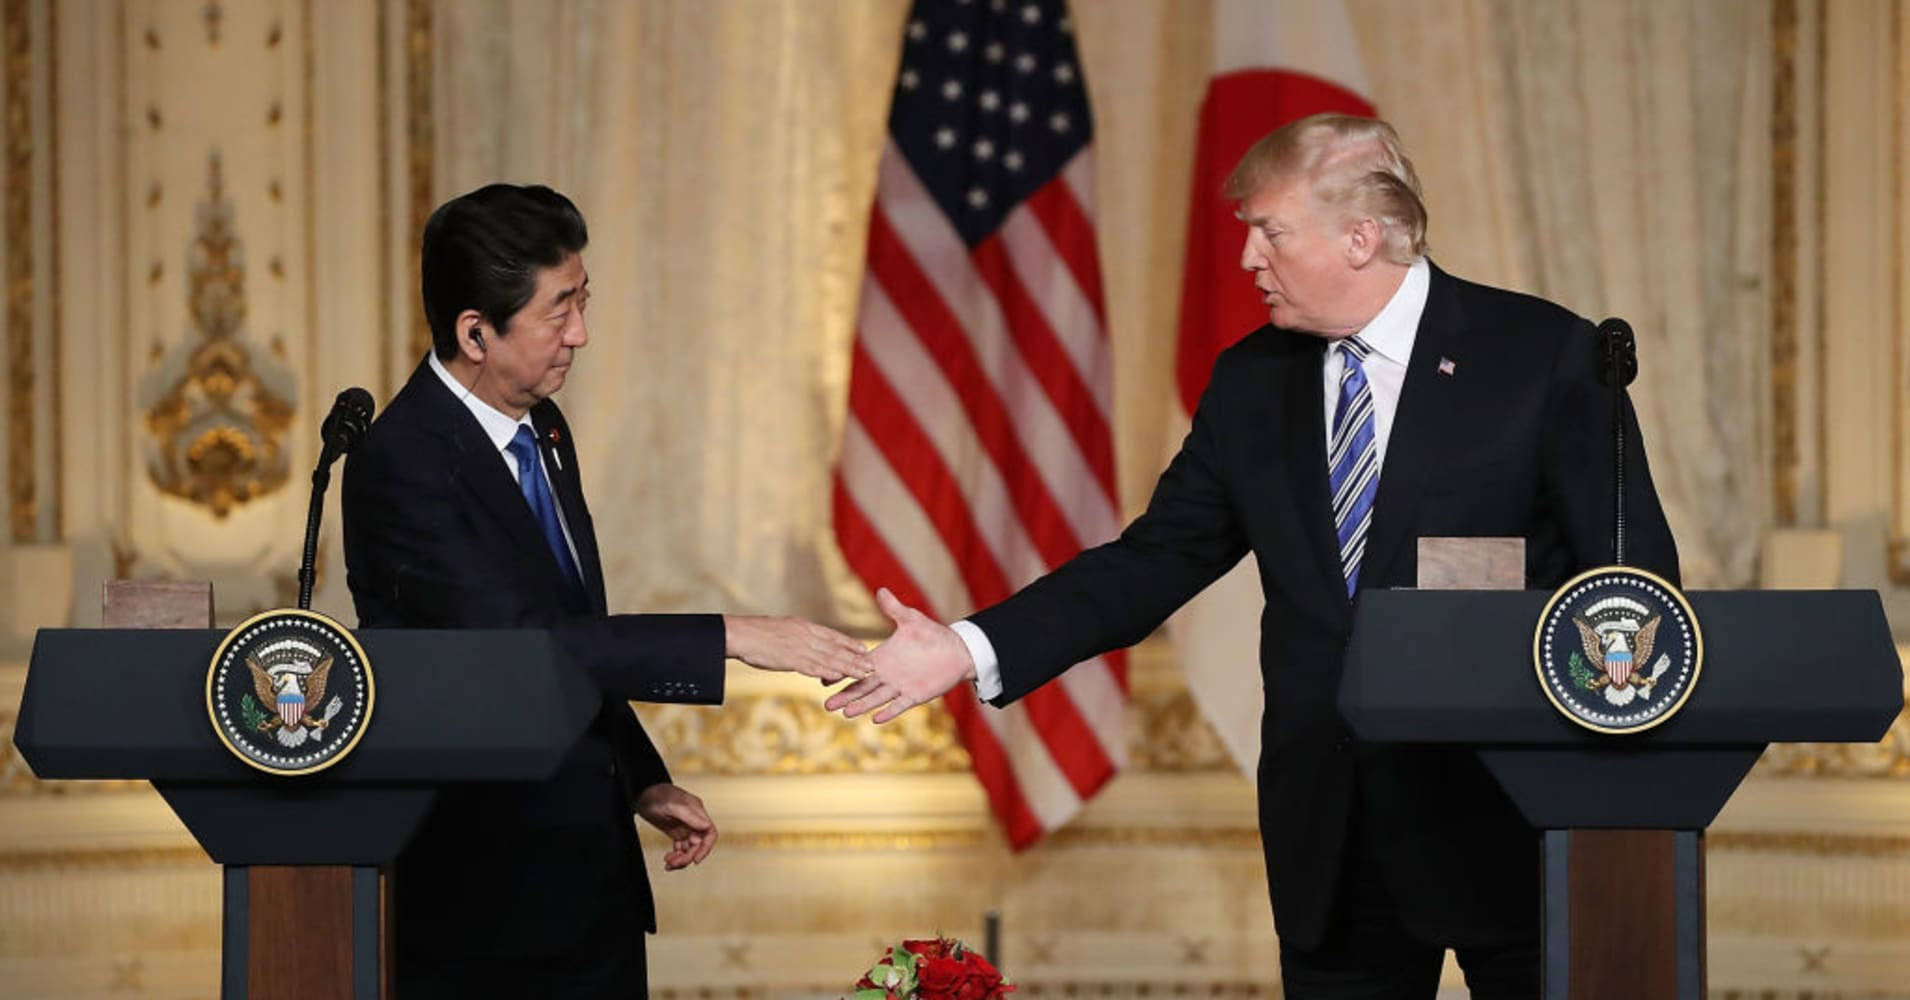 To avoid a trade war with the US, Japan may have to make concessions